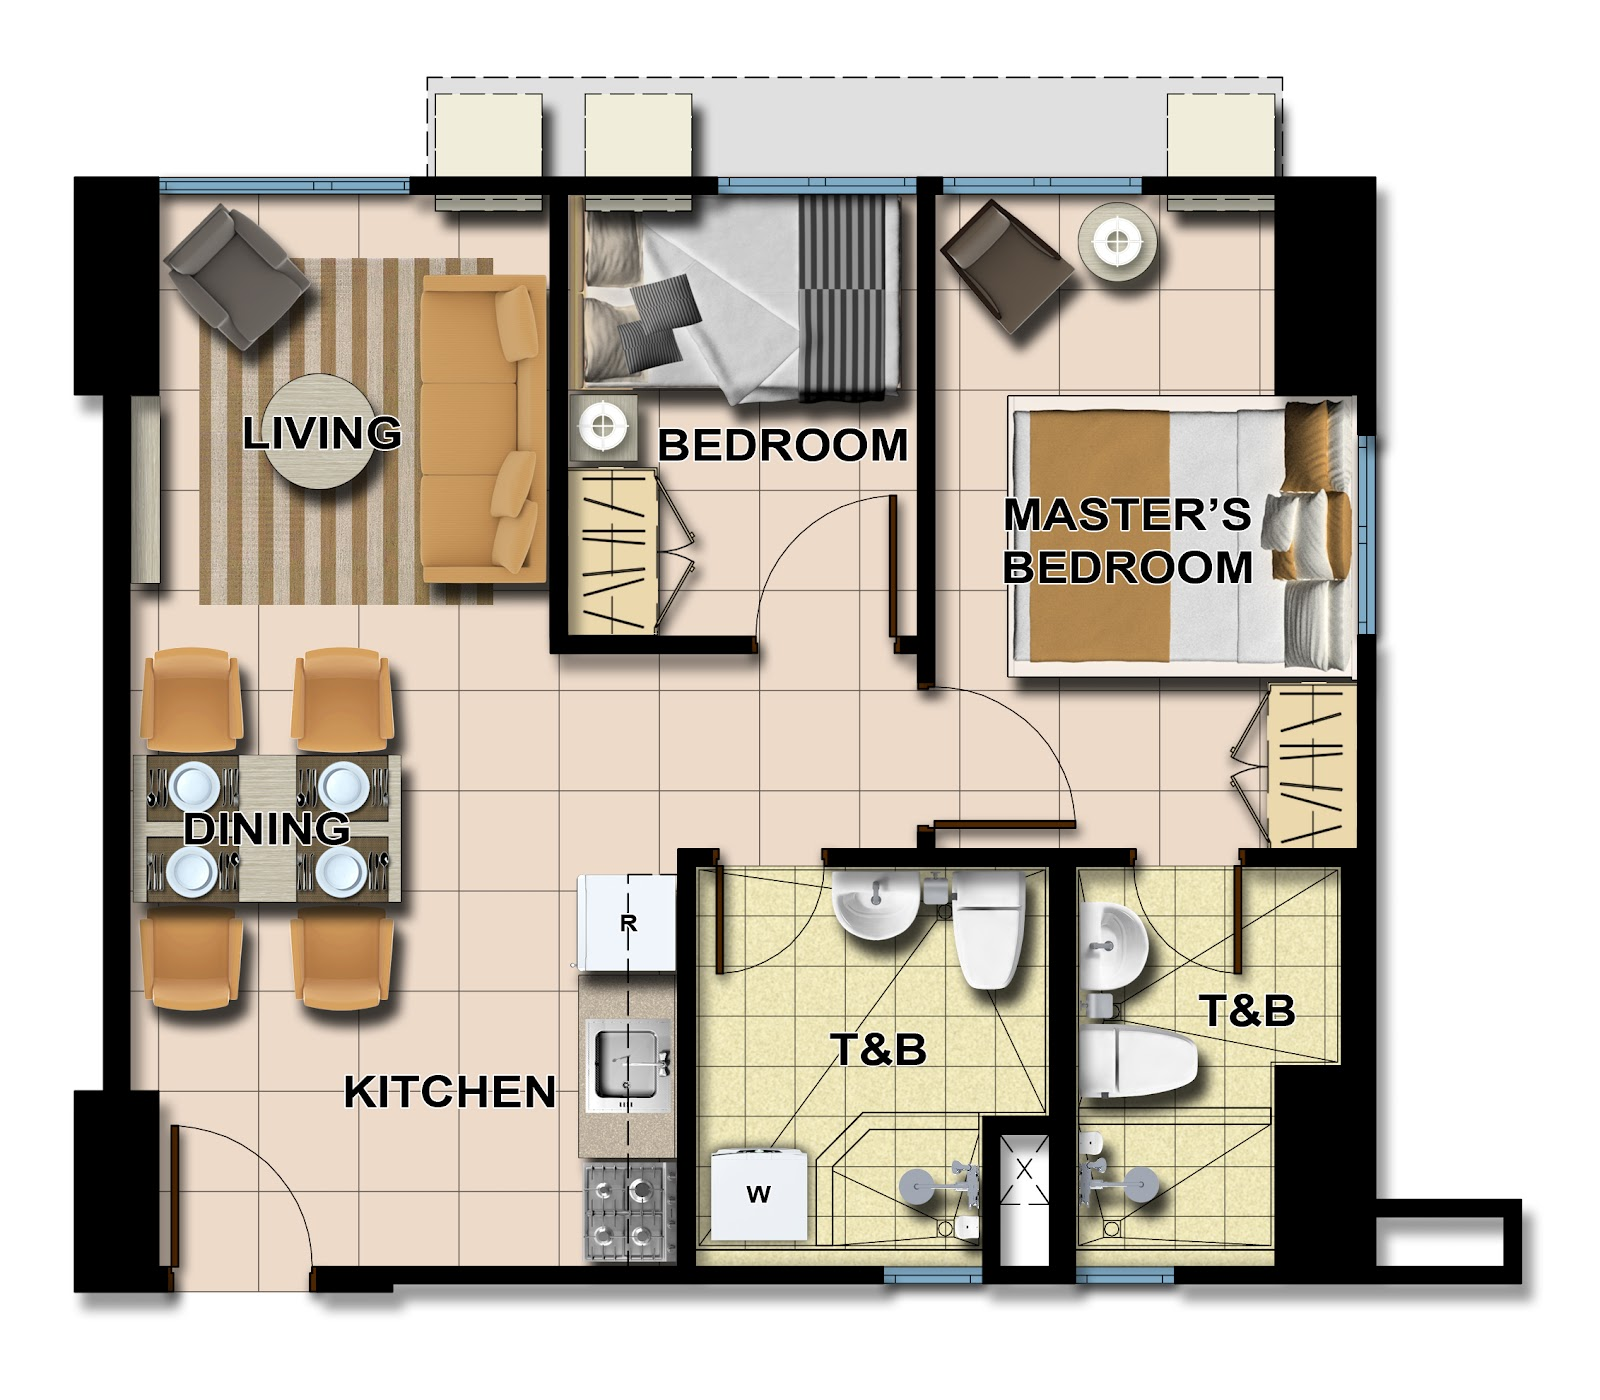 Avida towers centera for 4 unit condo plans